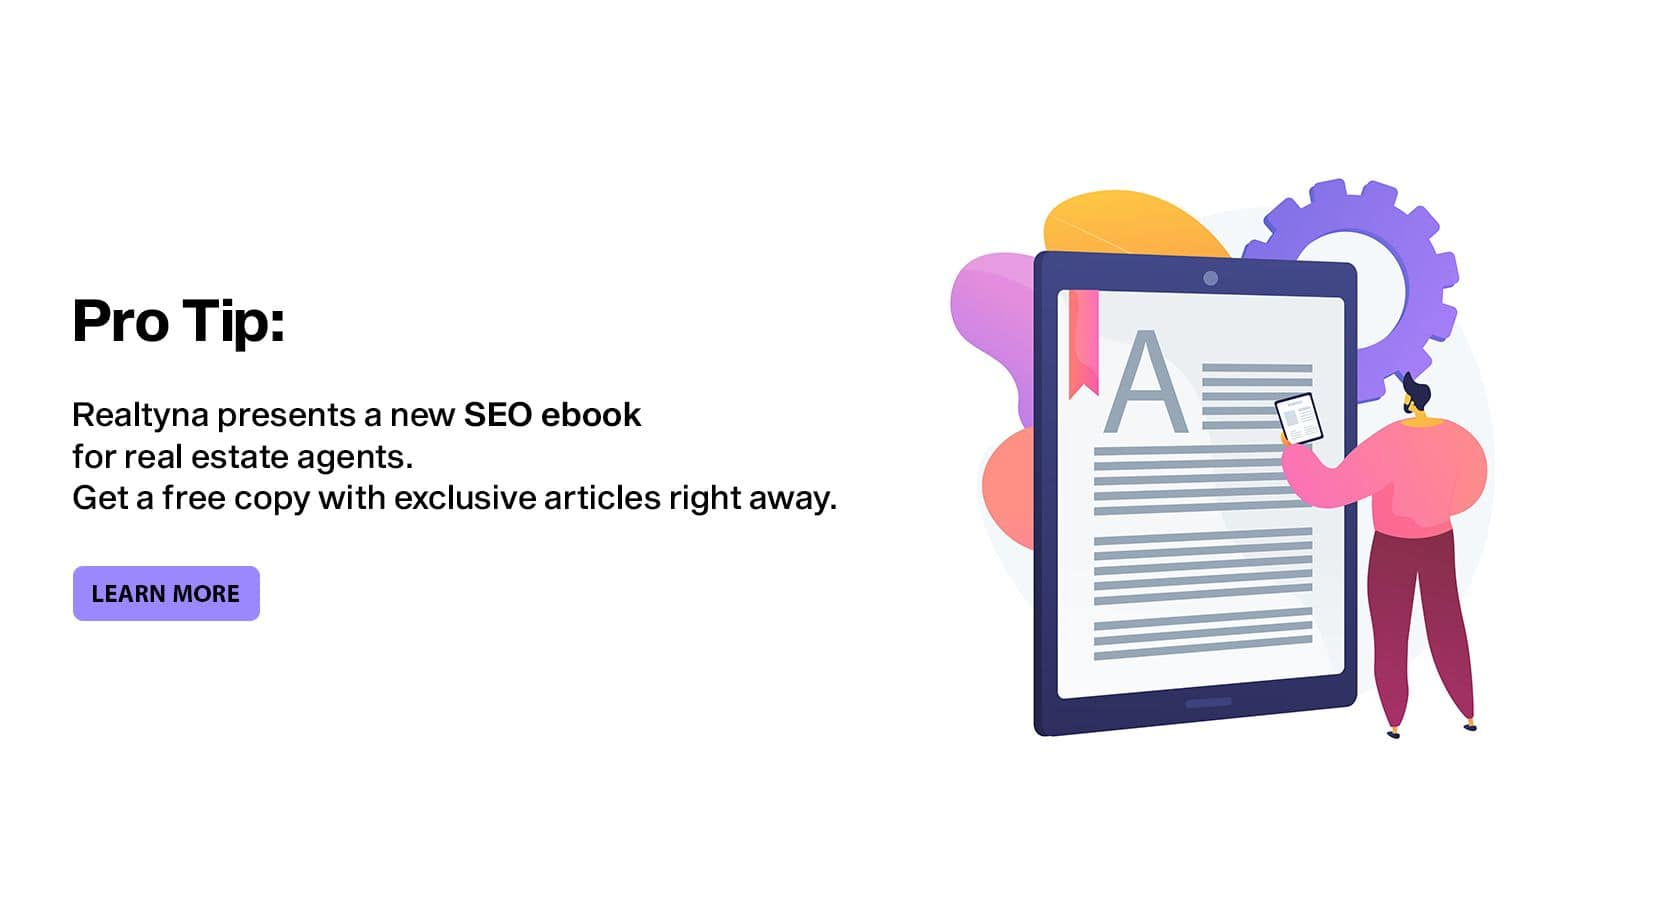 Pro-tip: Realtyna presents a new SEO ebook for real estate agents. Get a free copy with exclusive articles right away.